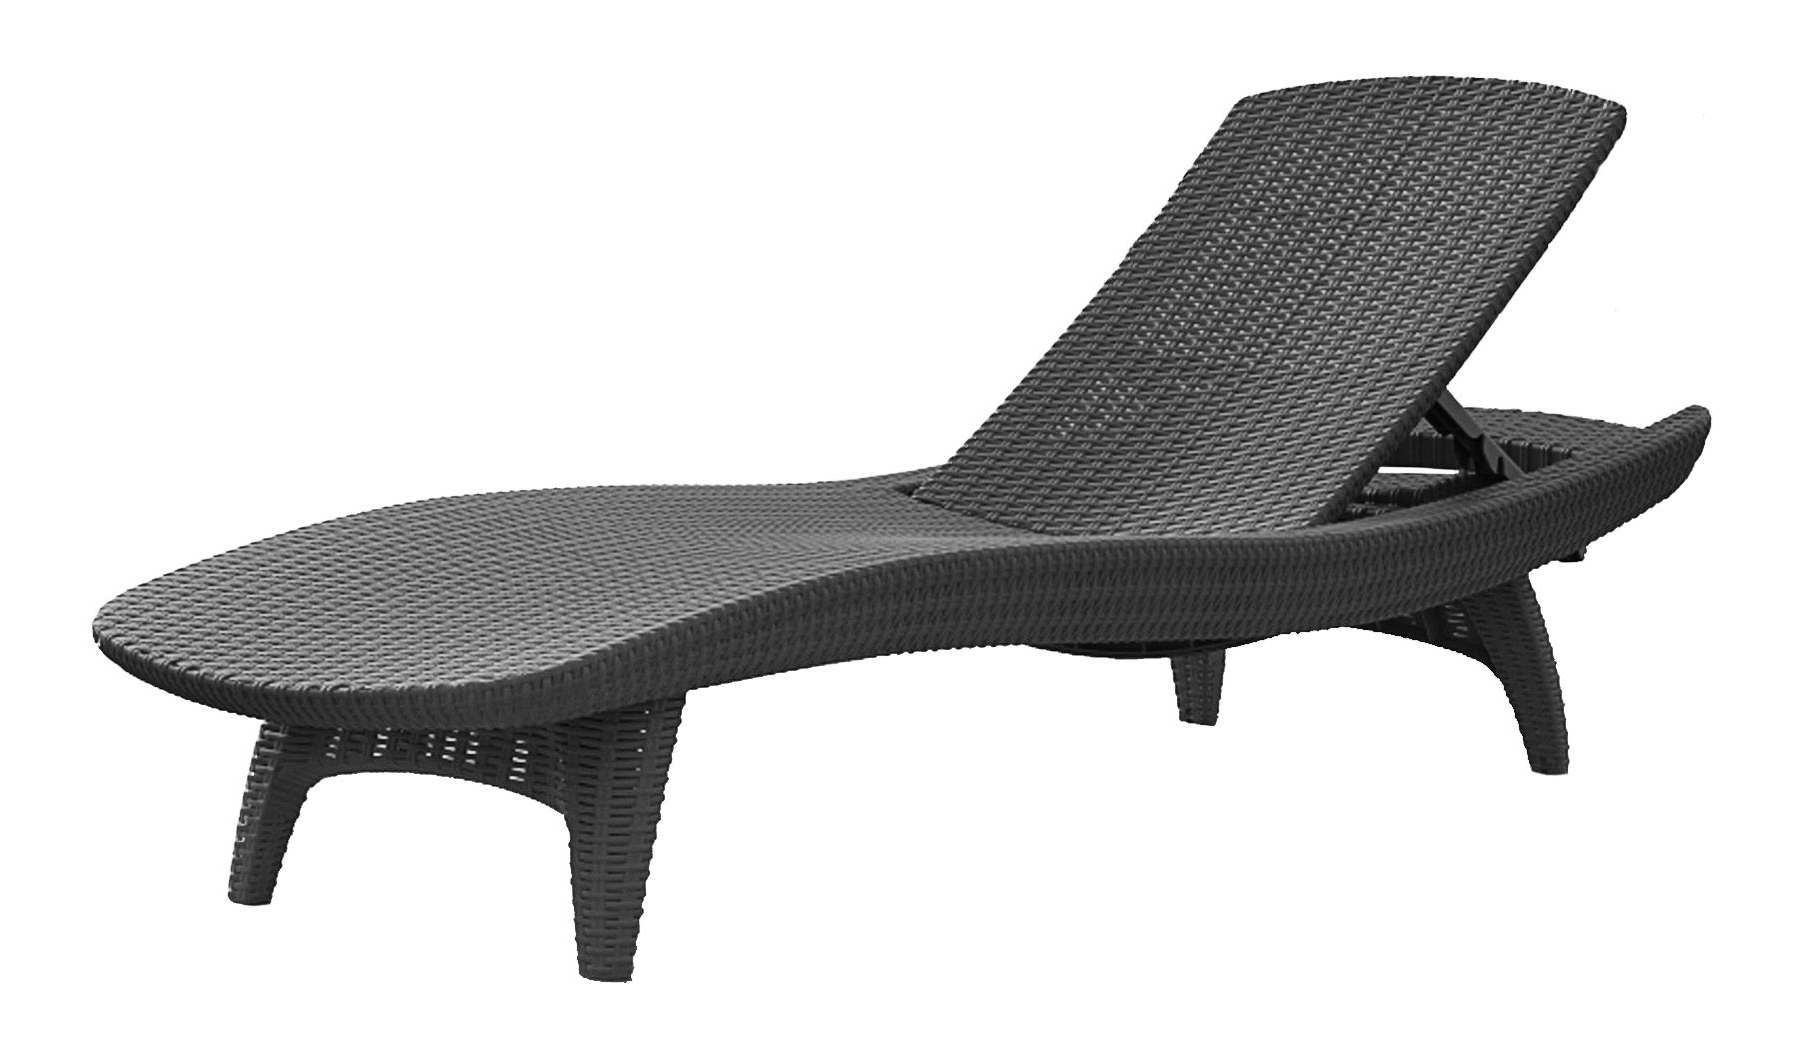 Most Recently Released Keter Pacific Chaise Sun Lounger And Side Table Set, Charcoal Pertaining To Keter Chaise Lounges (View 14 of 15)